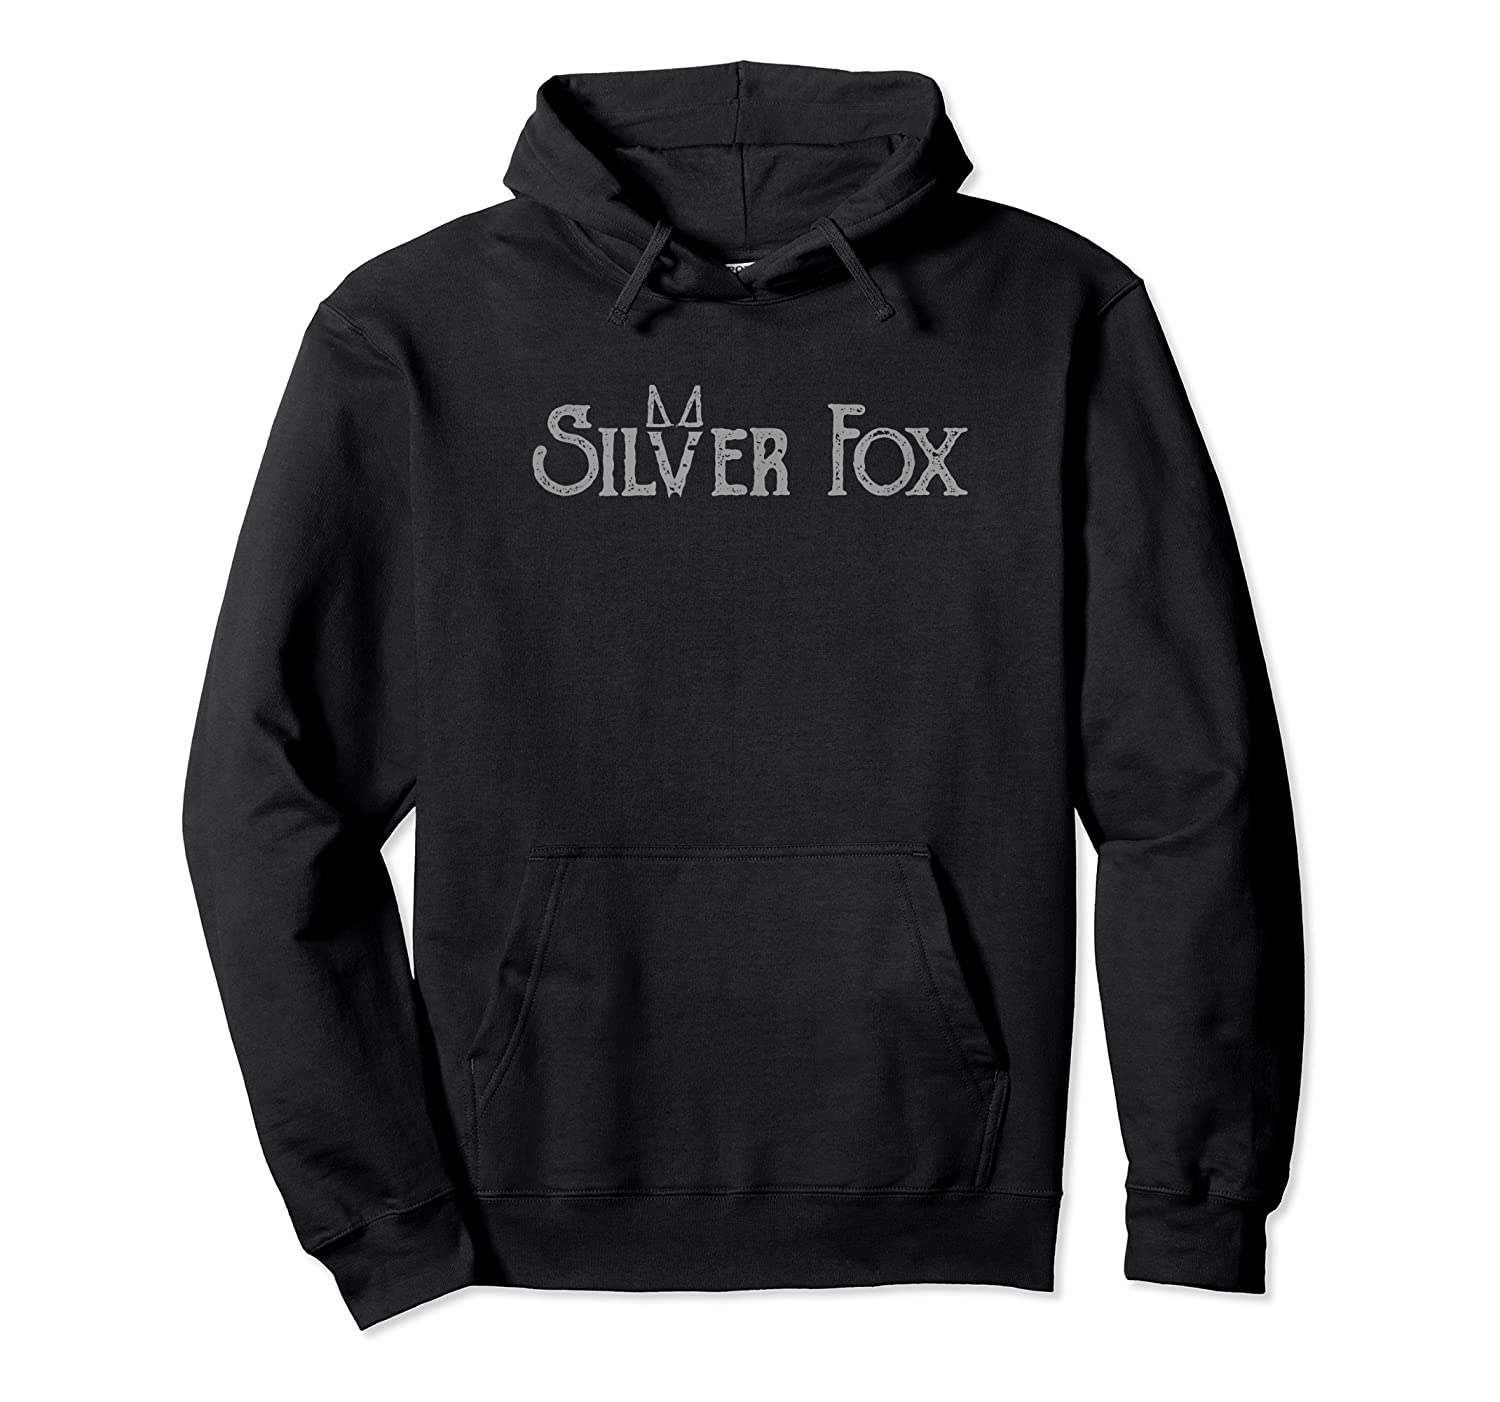 Silver Fox T Shirt For Sexy Silver Foxes, Baby Boomers Unisex Pullover Hoodie